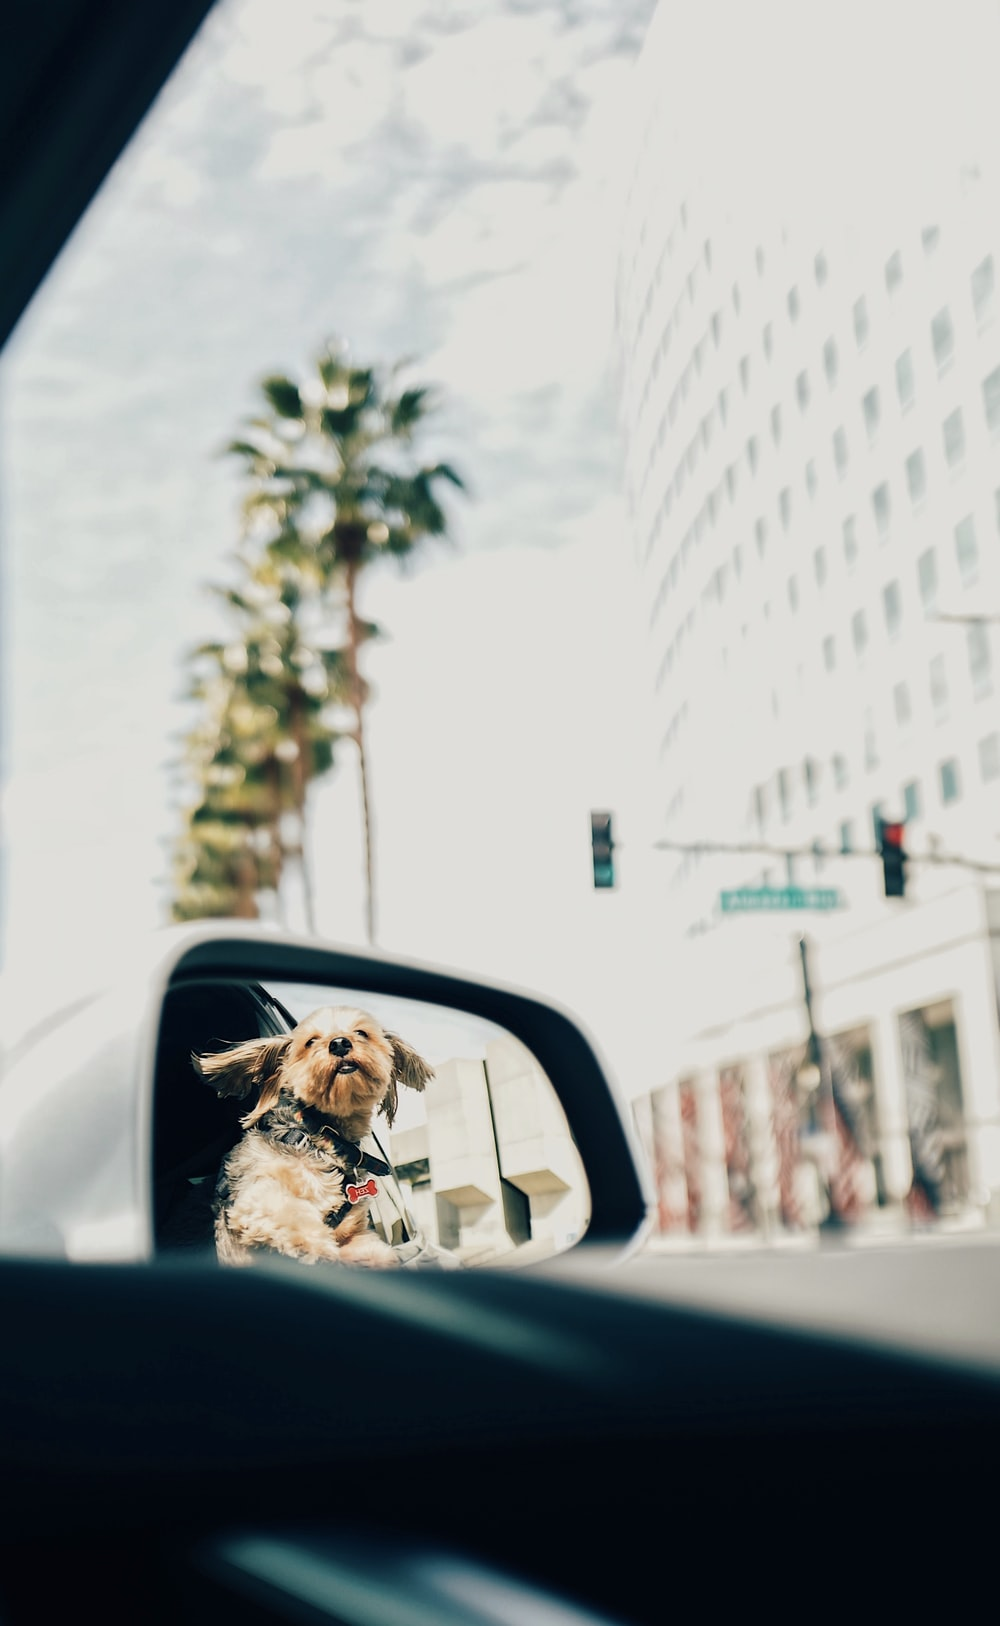 view of dog through vehicle side mirror